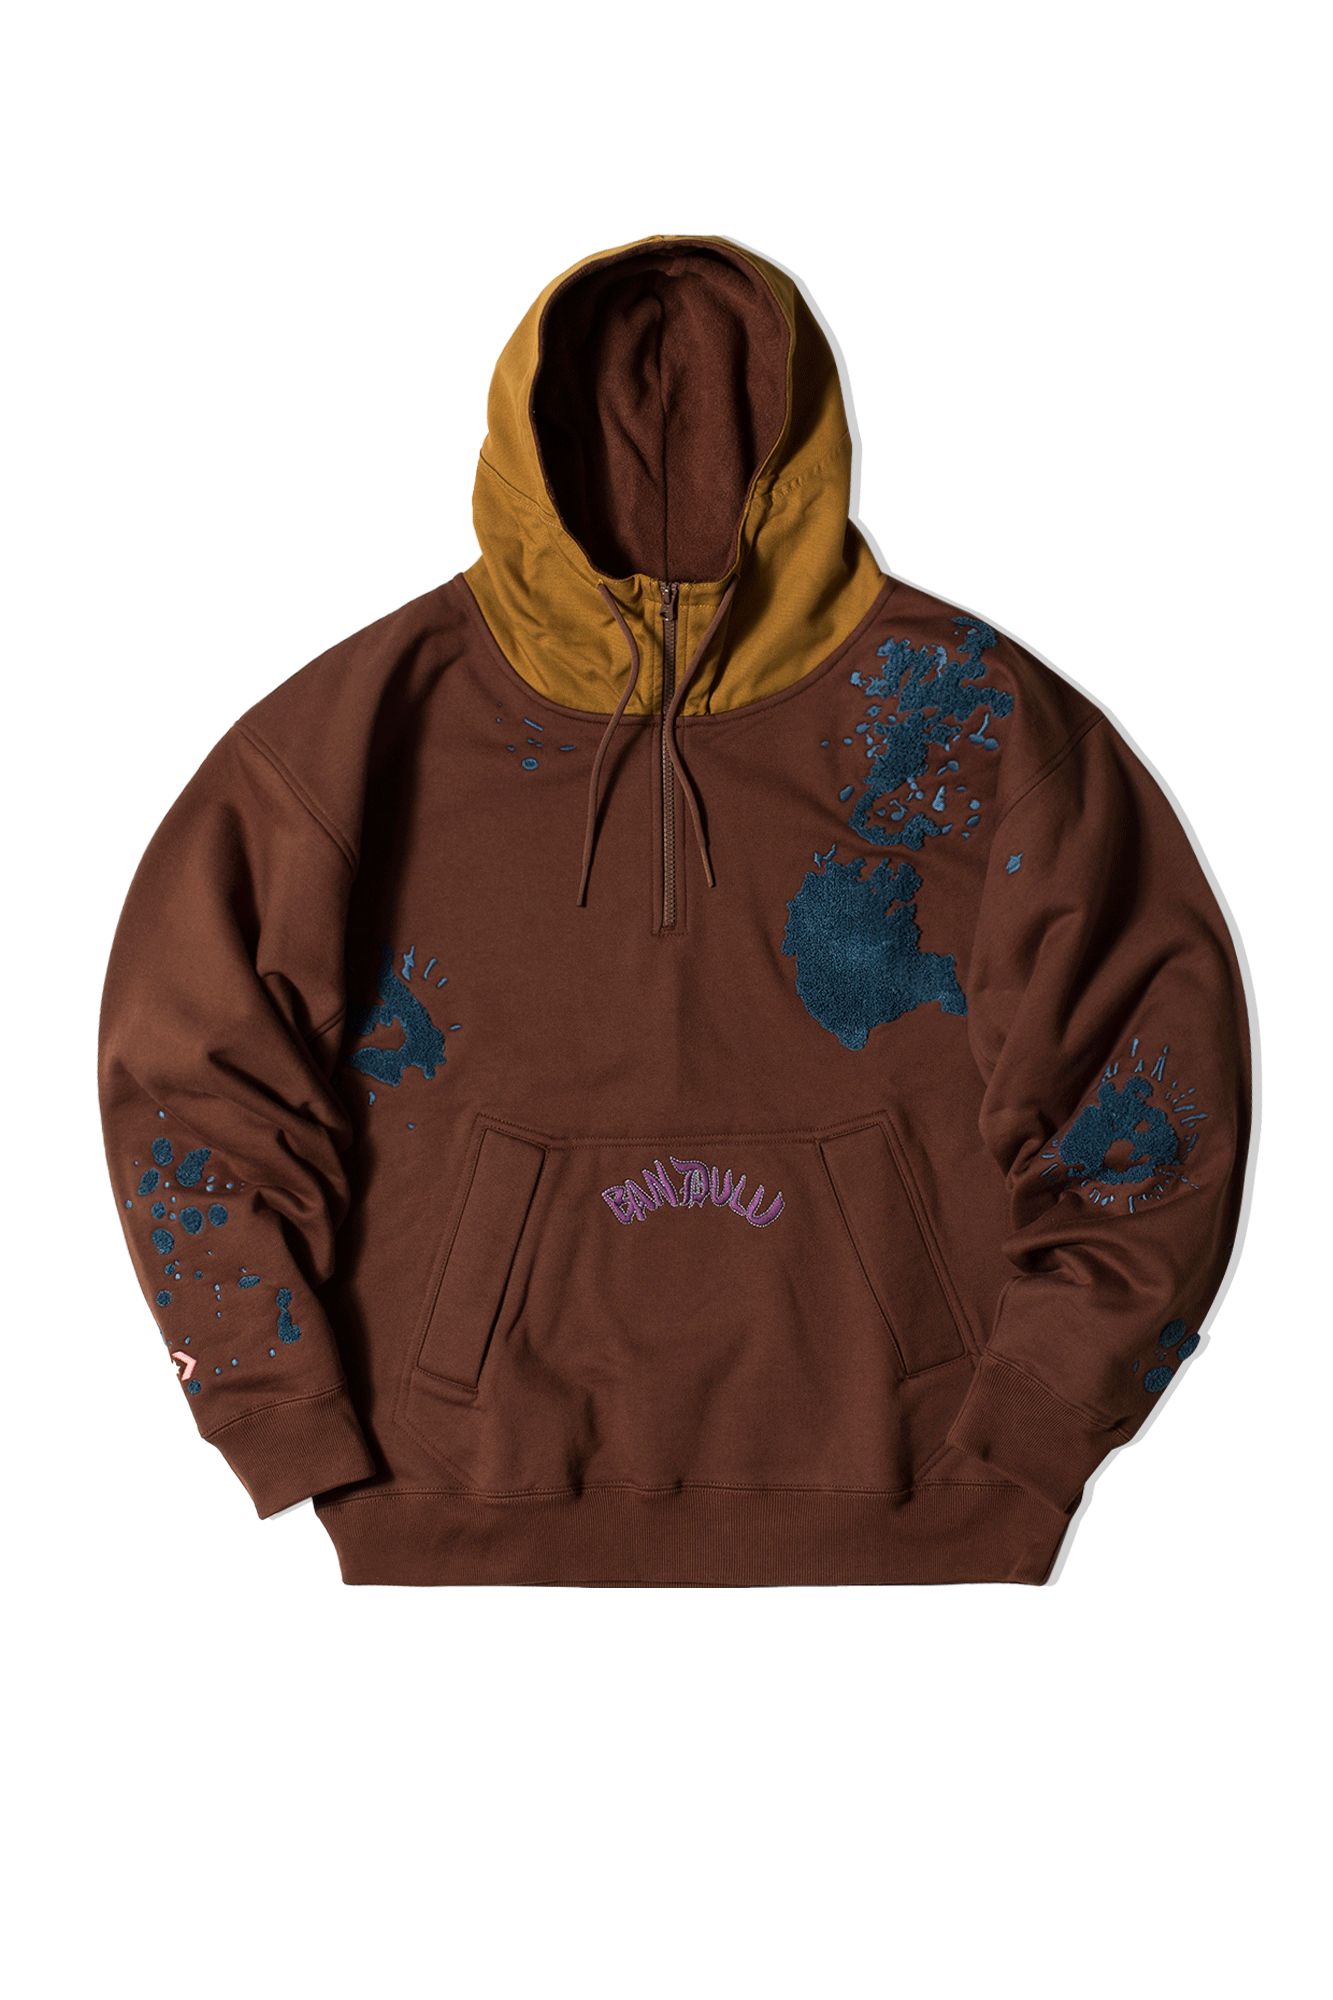 Hooded Sweatshirt x Bandulu Marrone